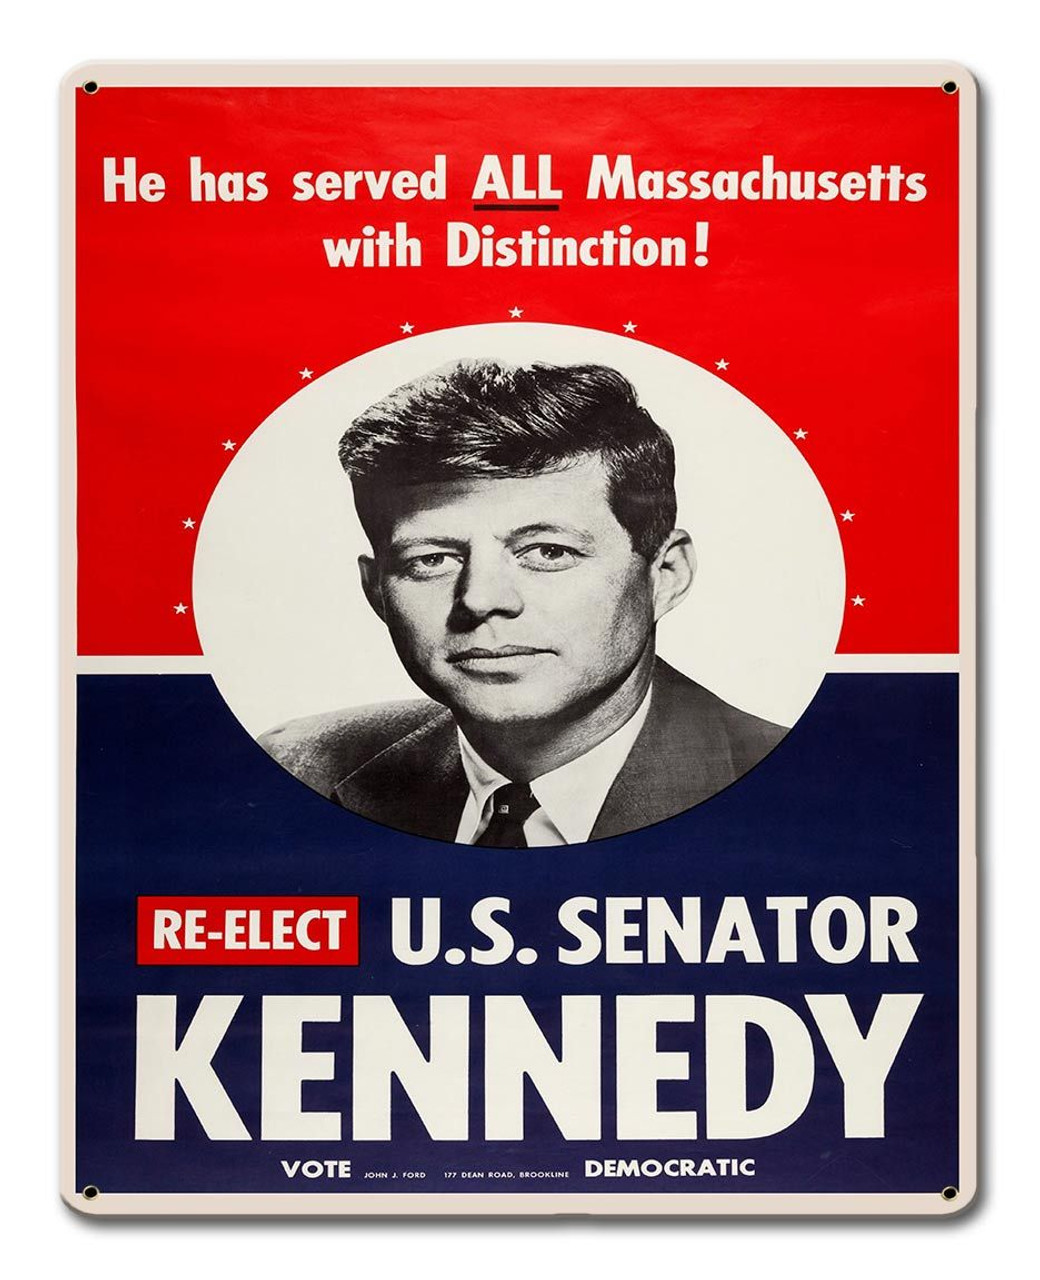 Reelect Kennedy 1958 Metal Sign 12 x 15 Inches